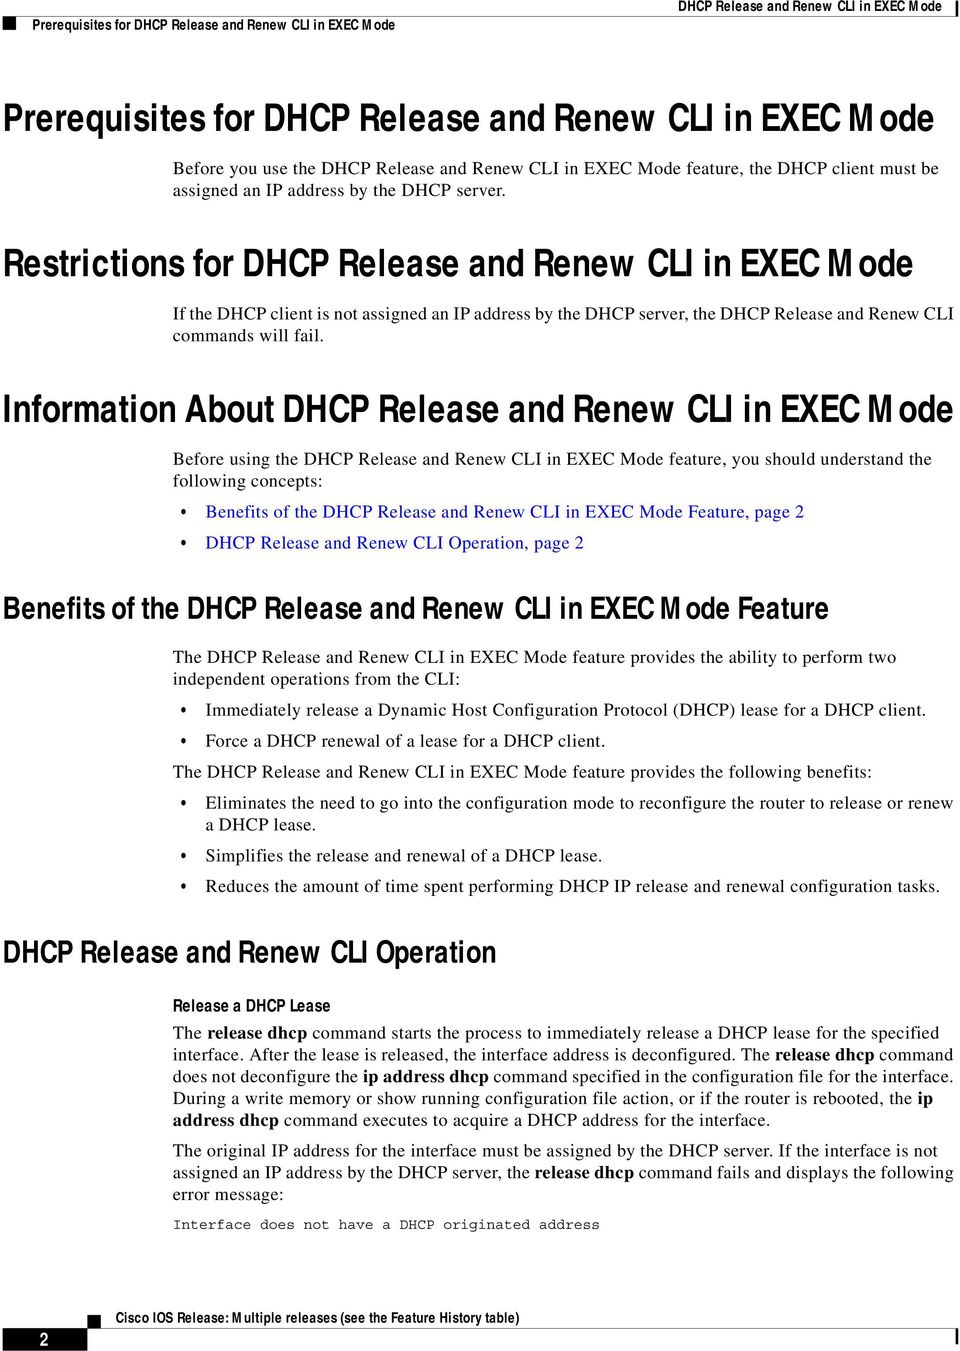 Restrictions for DHCP Release and Renew CLI in EXEC Mode If the DHCP client is not assigned an IP address by the DHCP server, the DHCP Release and Renew CLI commands will fail.